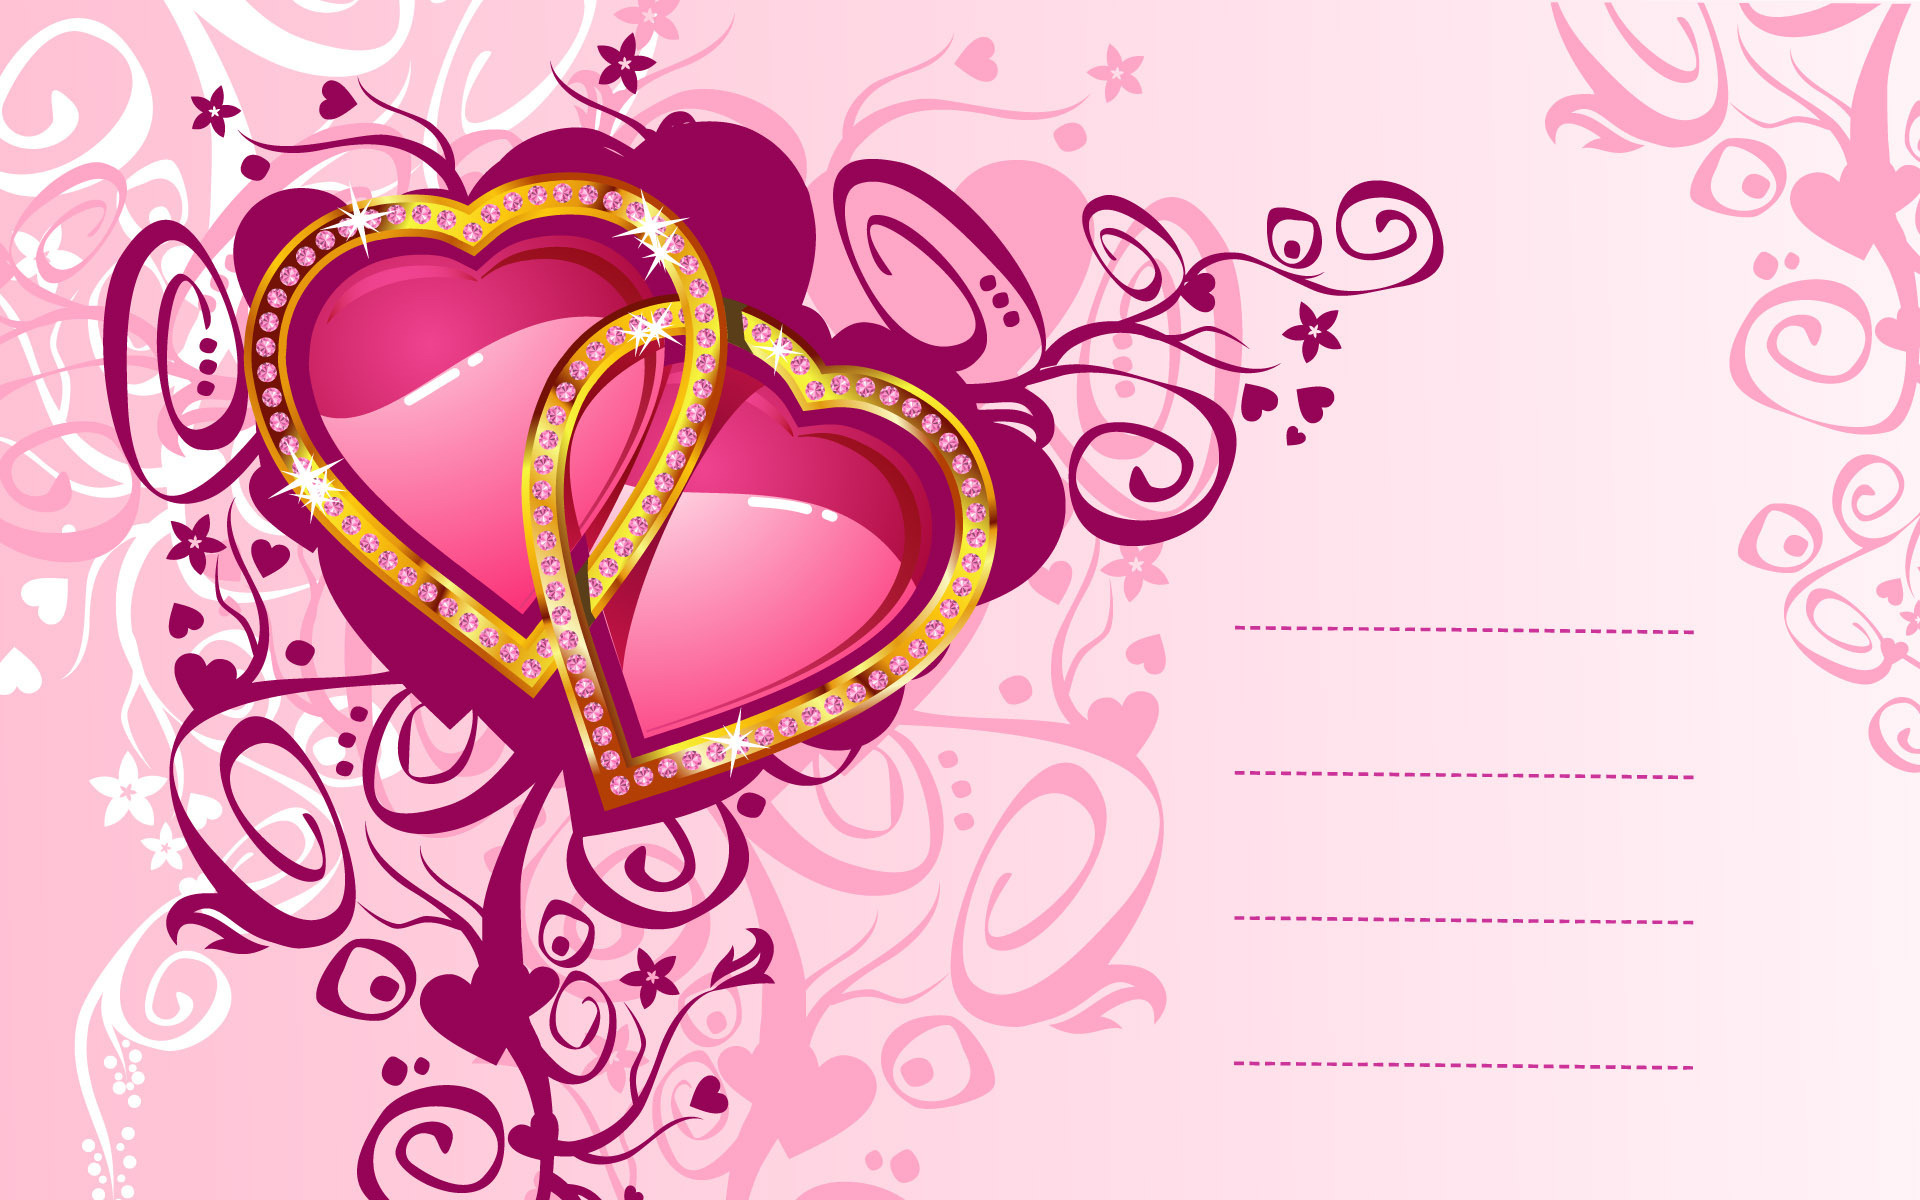 Wallpaper Love Card Widescreen Design